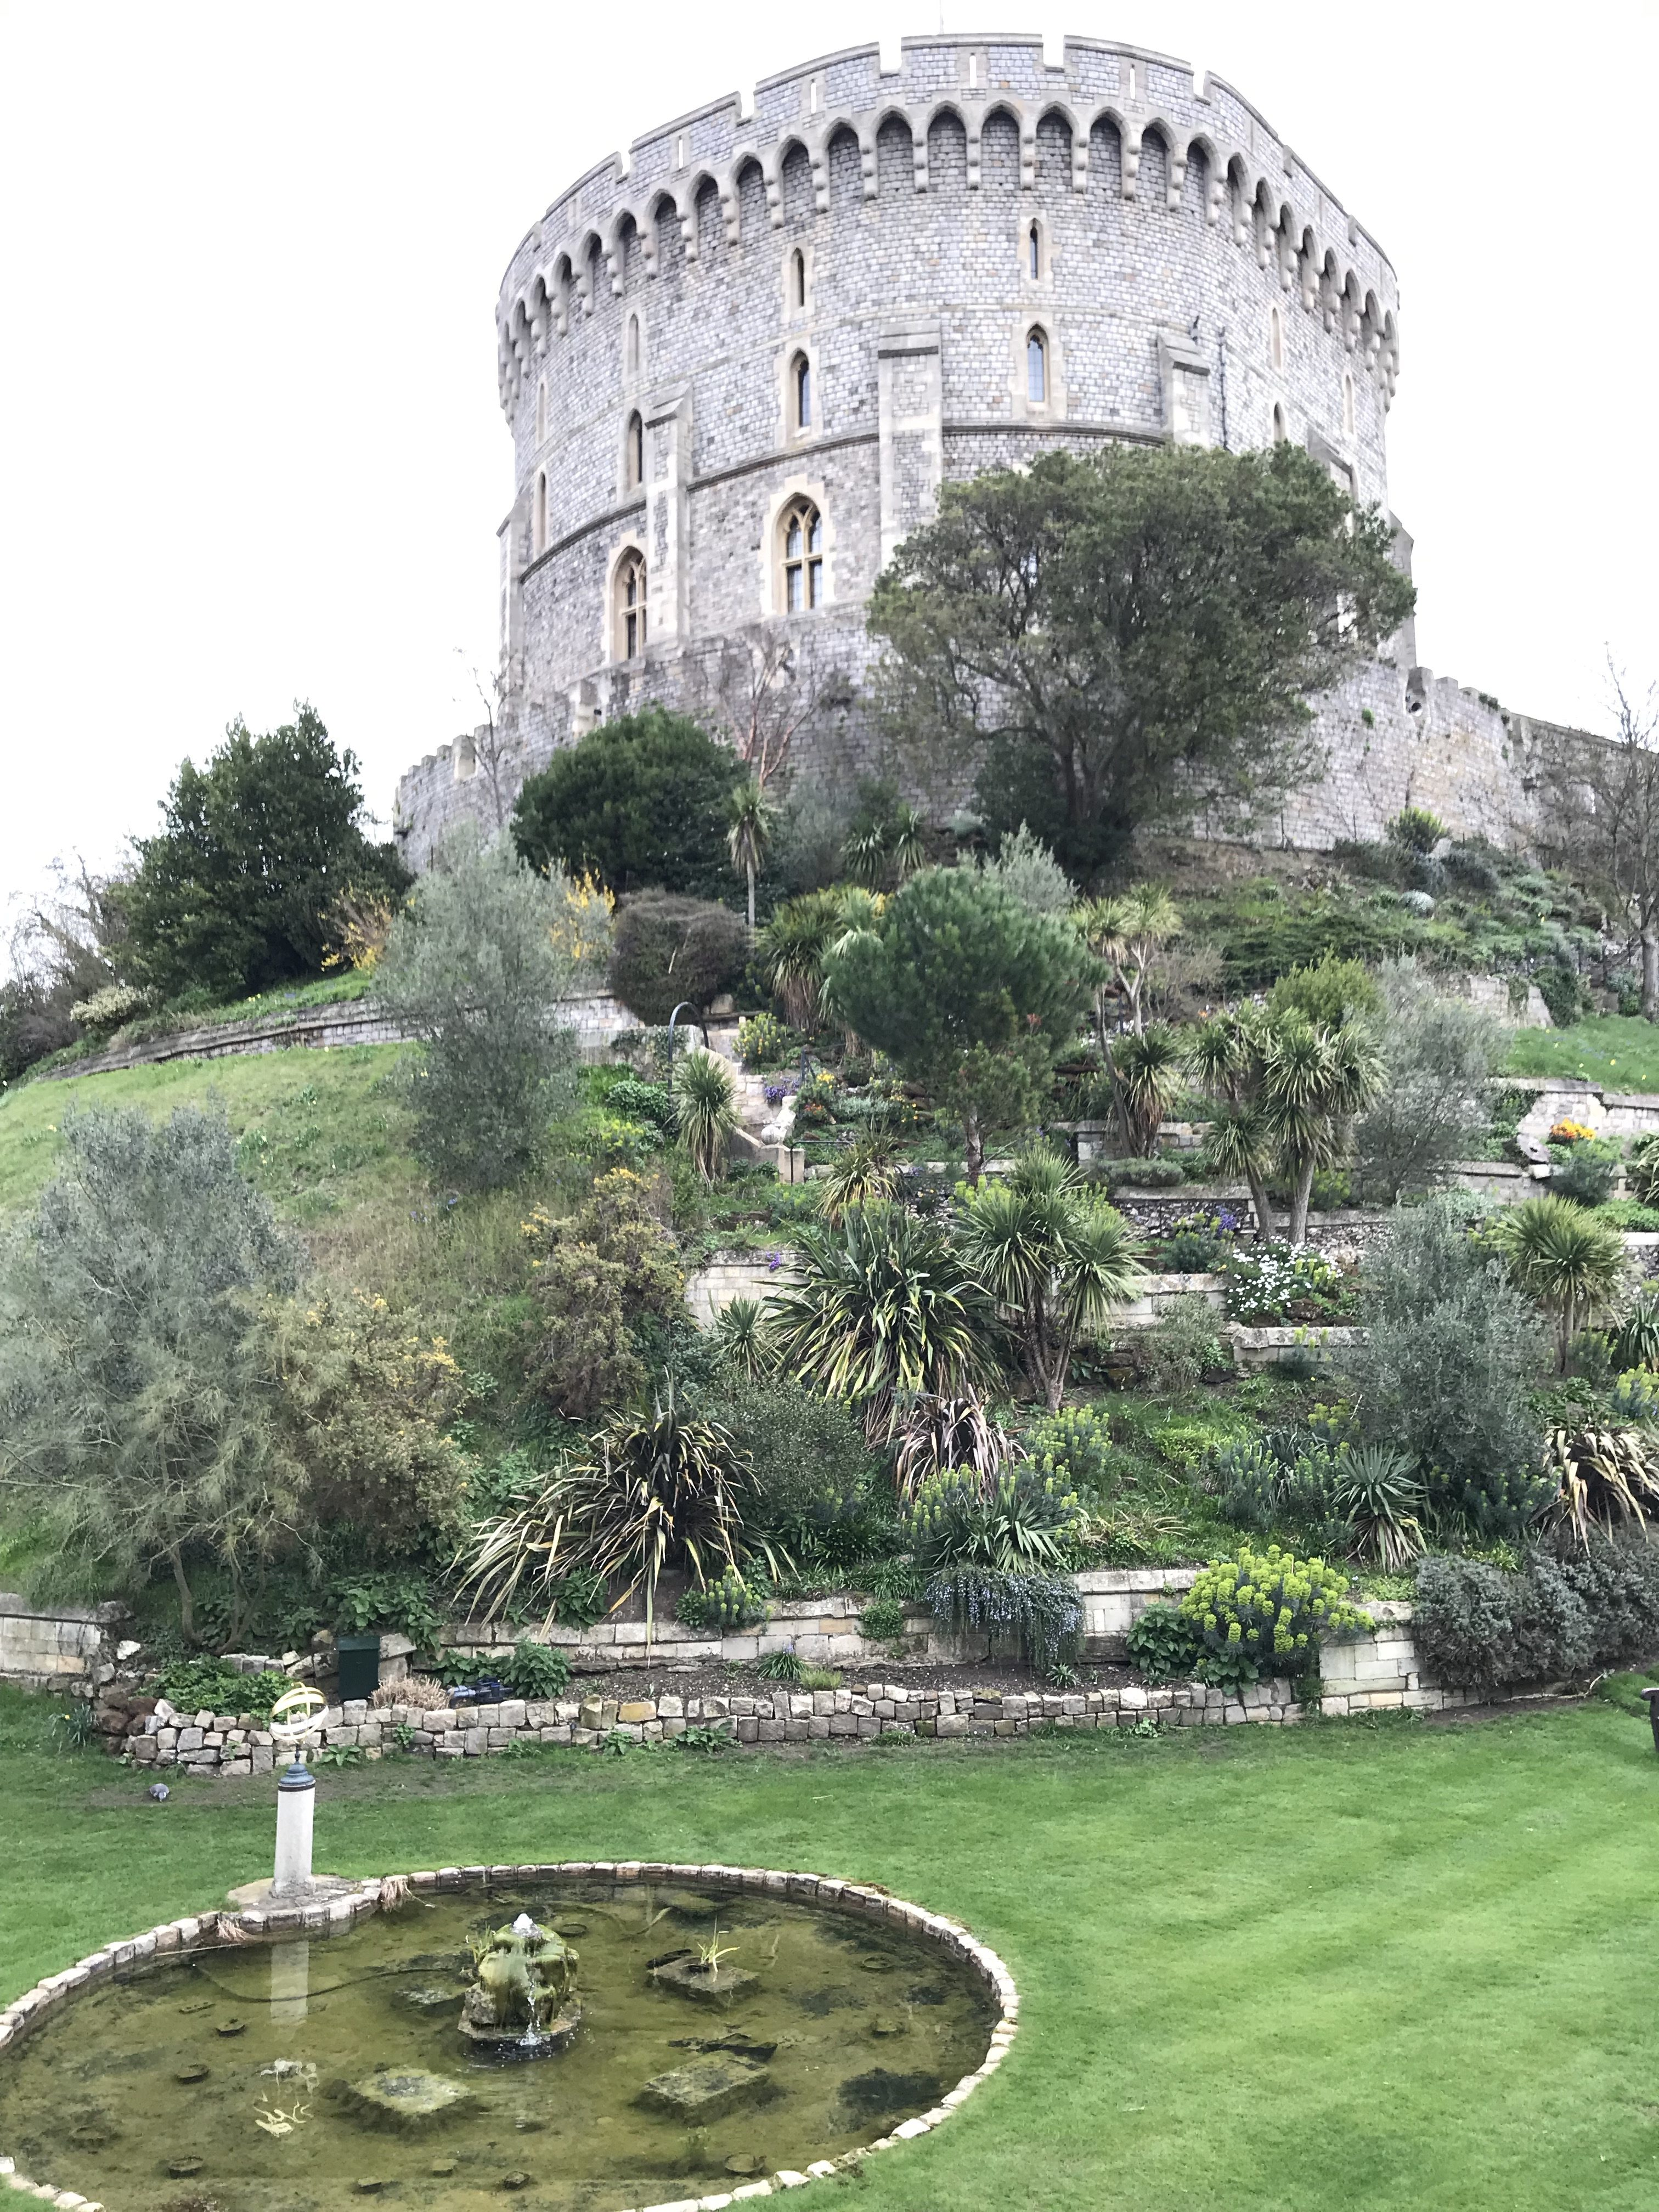 Round tower and gardens below it at Windsor Castle